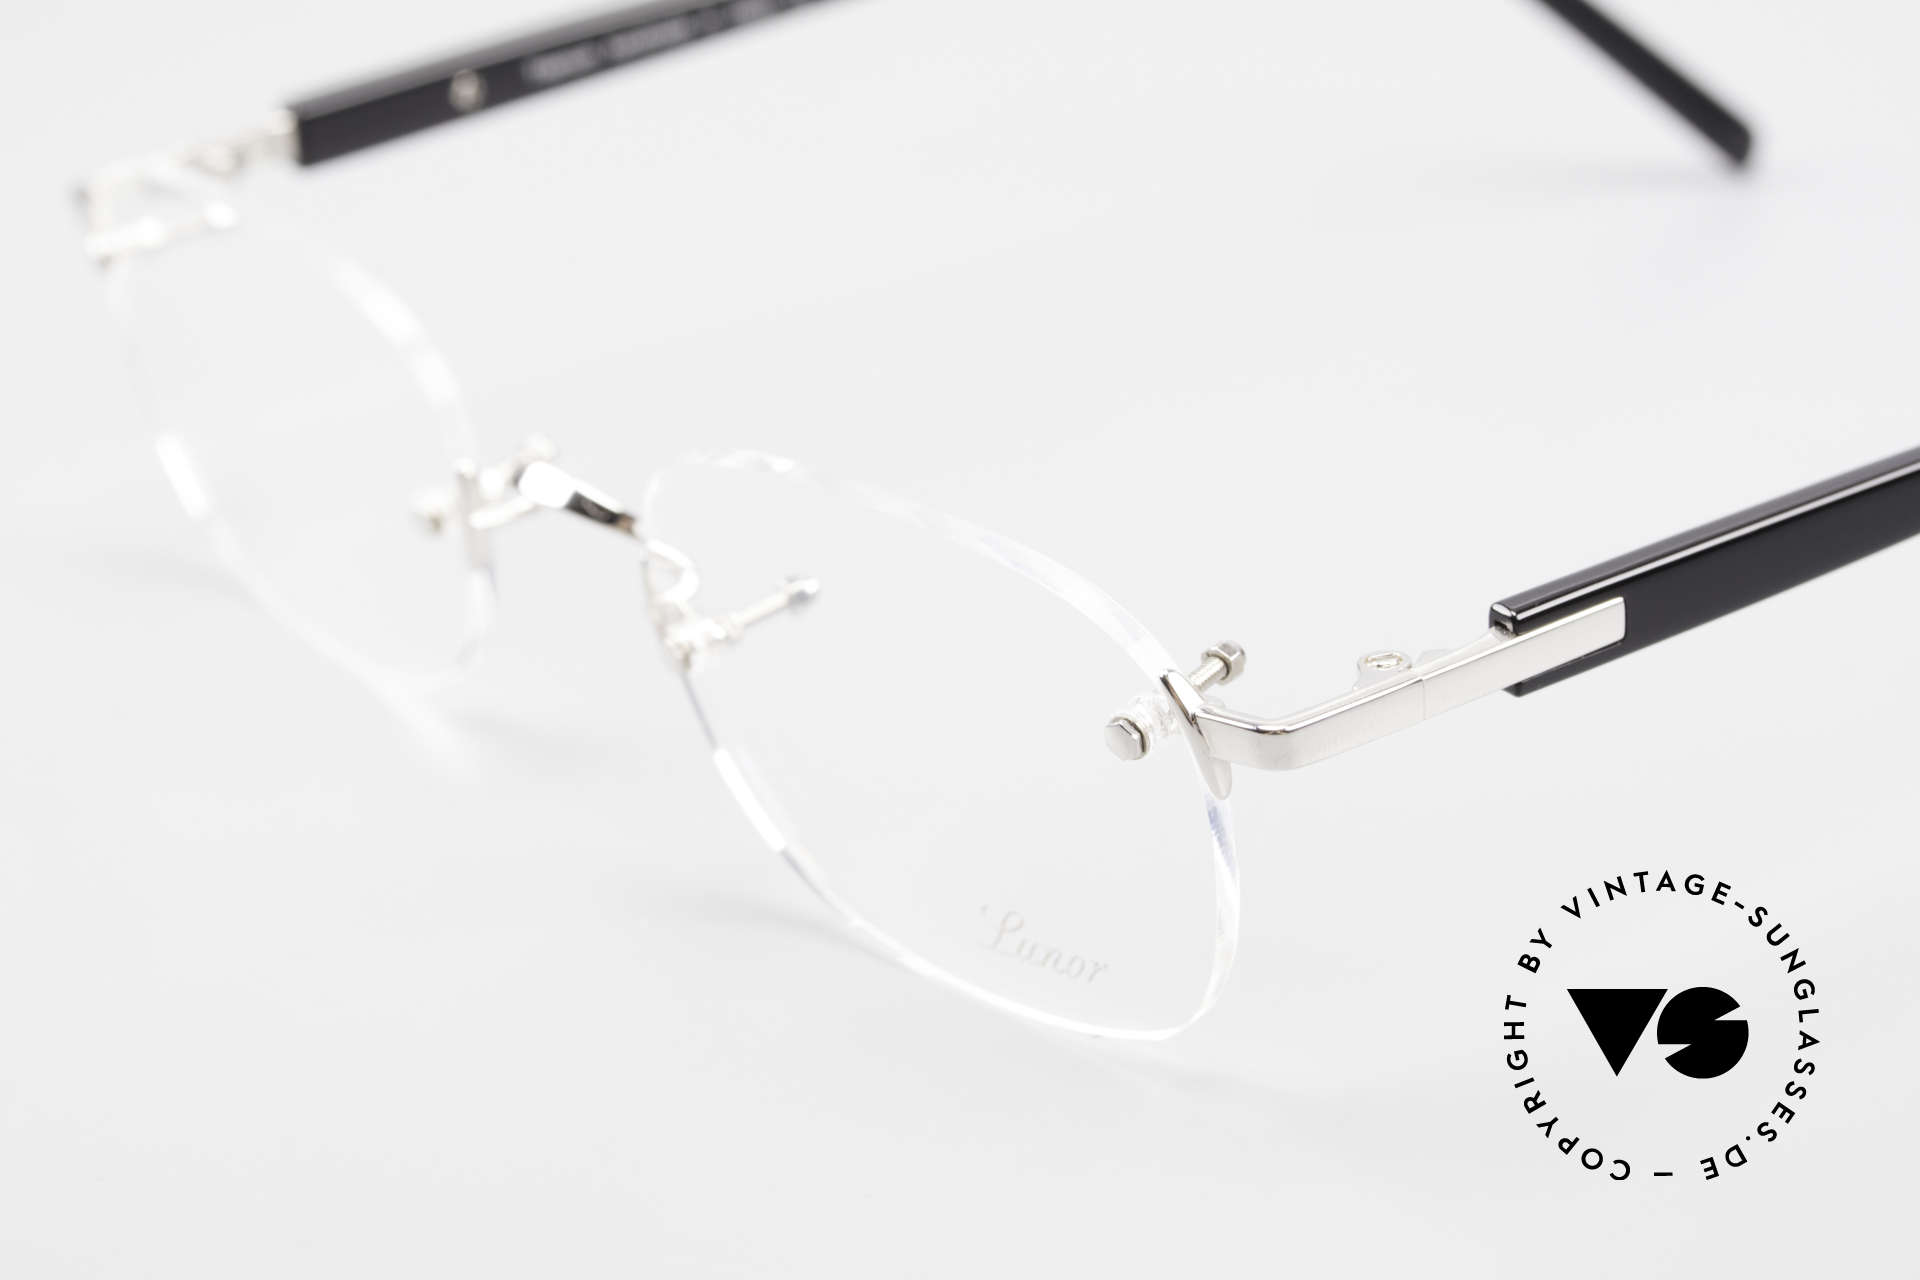 Lunor Classic V Anatomic PP Rimless Frame Platin Plated, from the 2015's collection, but in a well-known quality, Made for Men